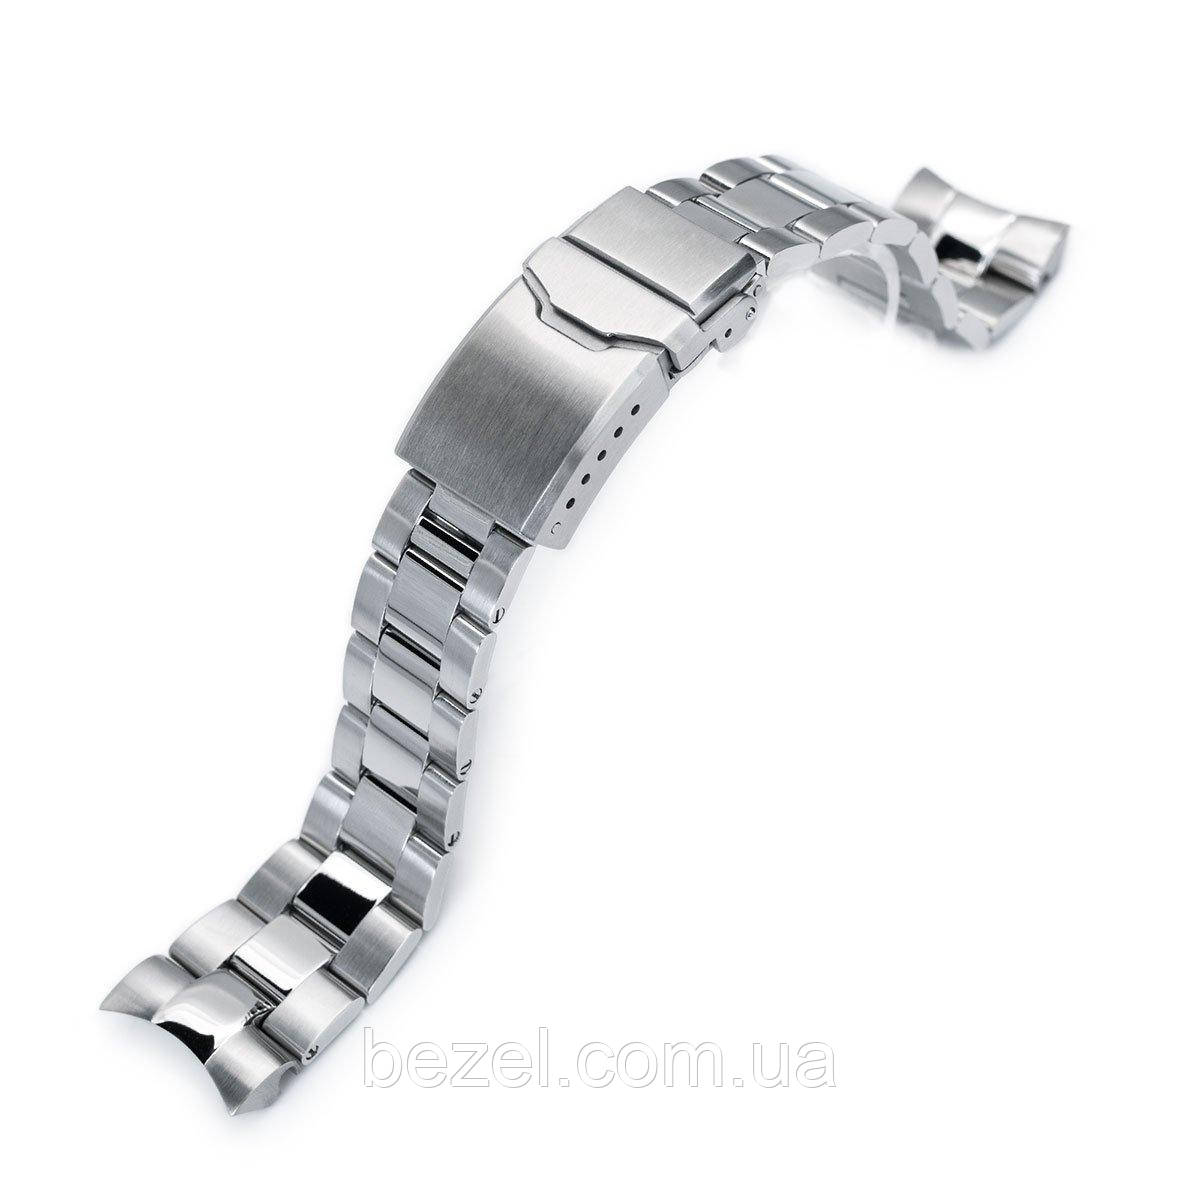 22mm Super Oyster Brushed & Polished 316L Stainless Steel Watch Band for Orient Mako II & Ray II, Button Chamfer